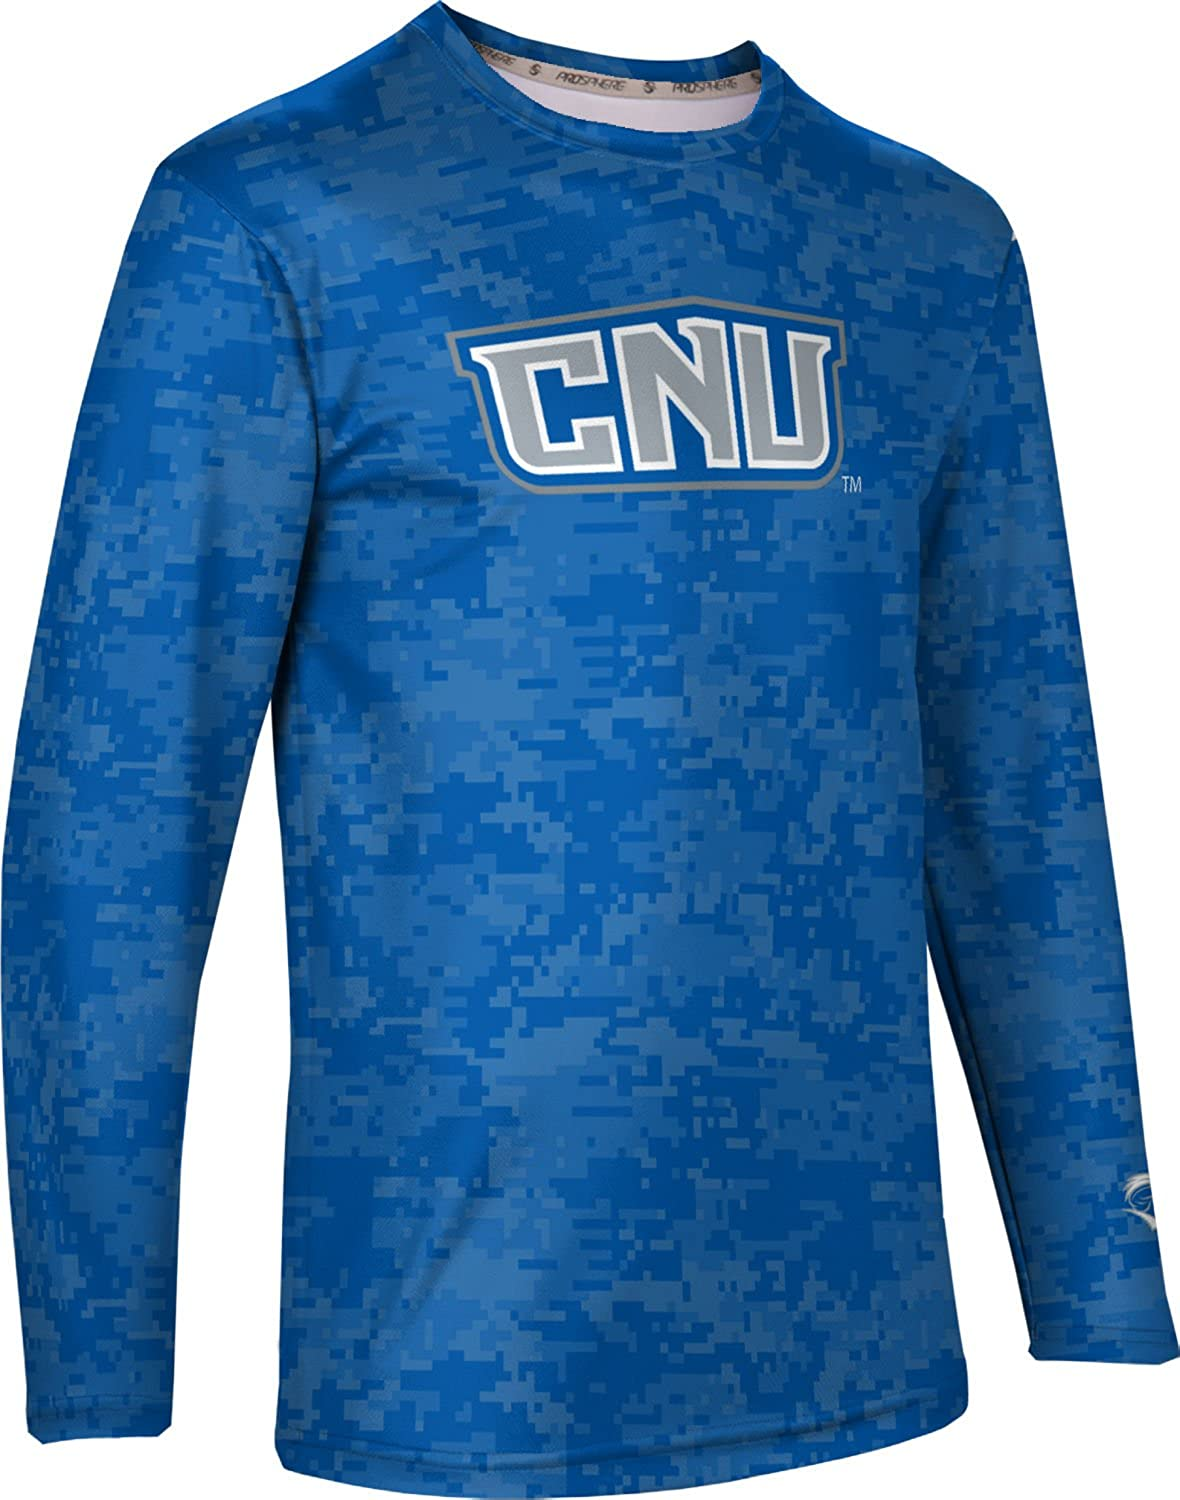 ProSphere Christopher Newport University Mens Long Sleeve Tee Digi Camo